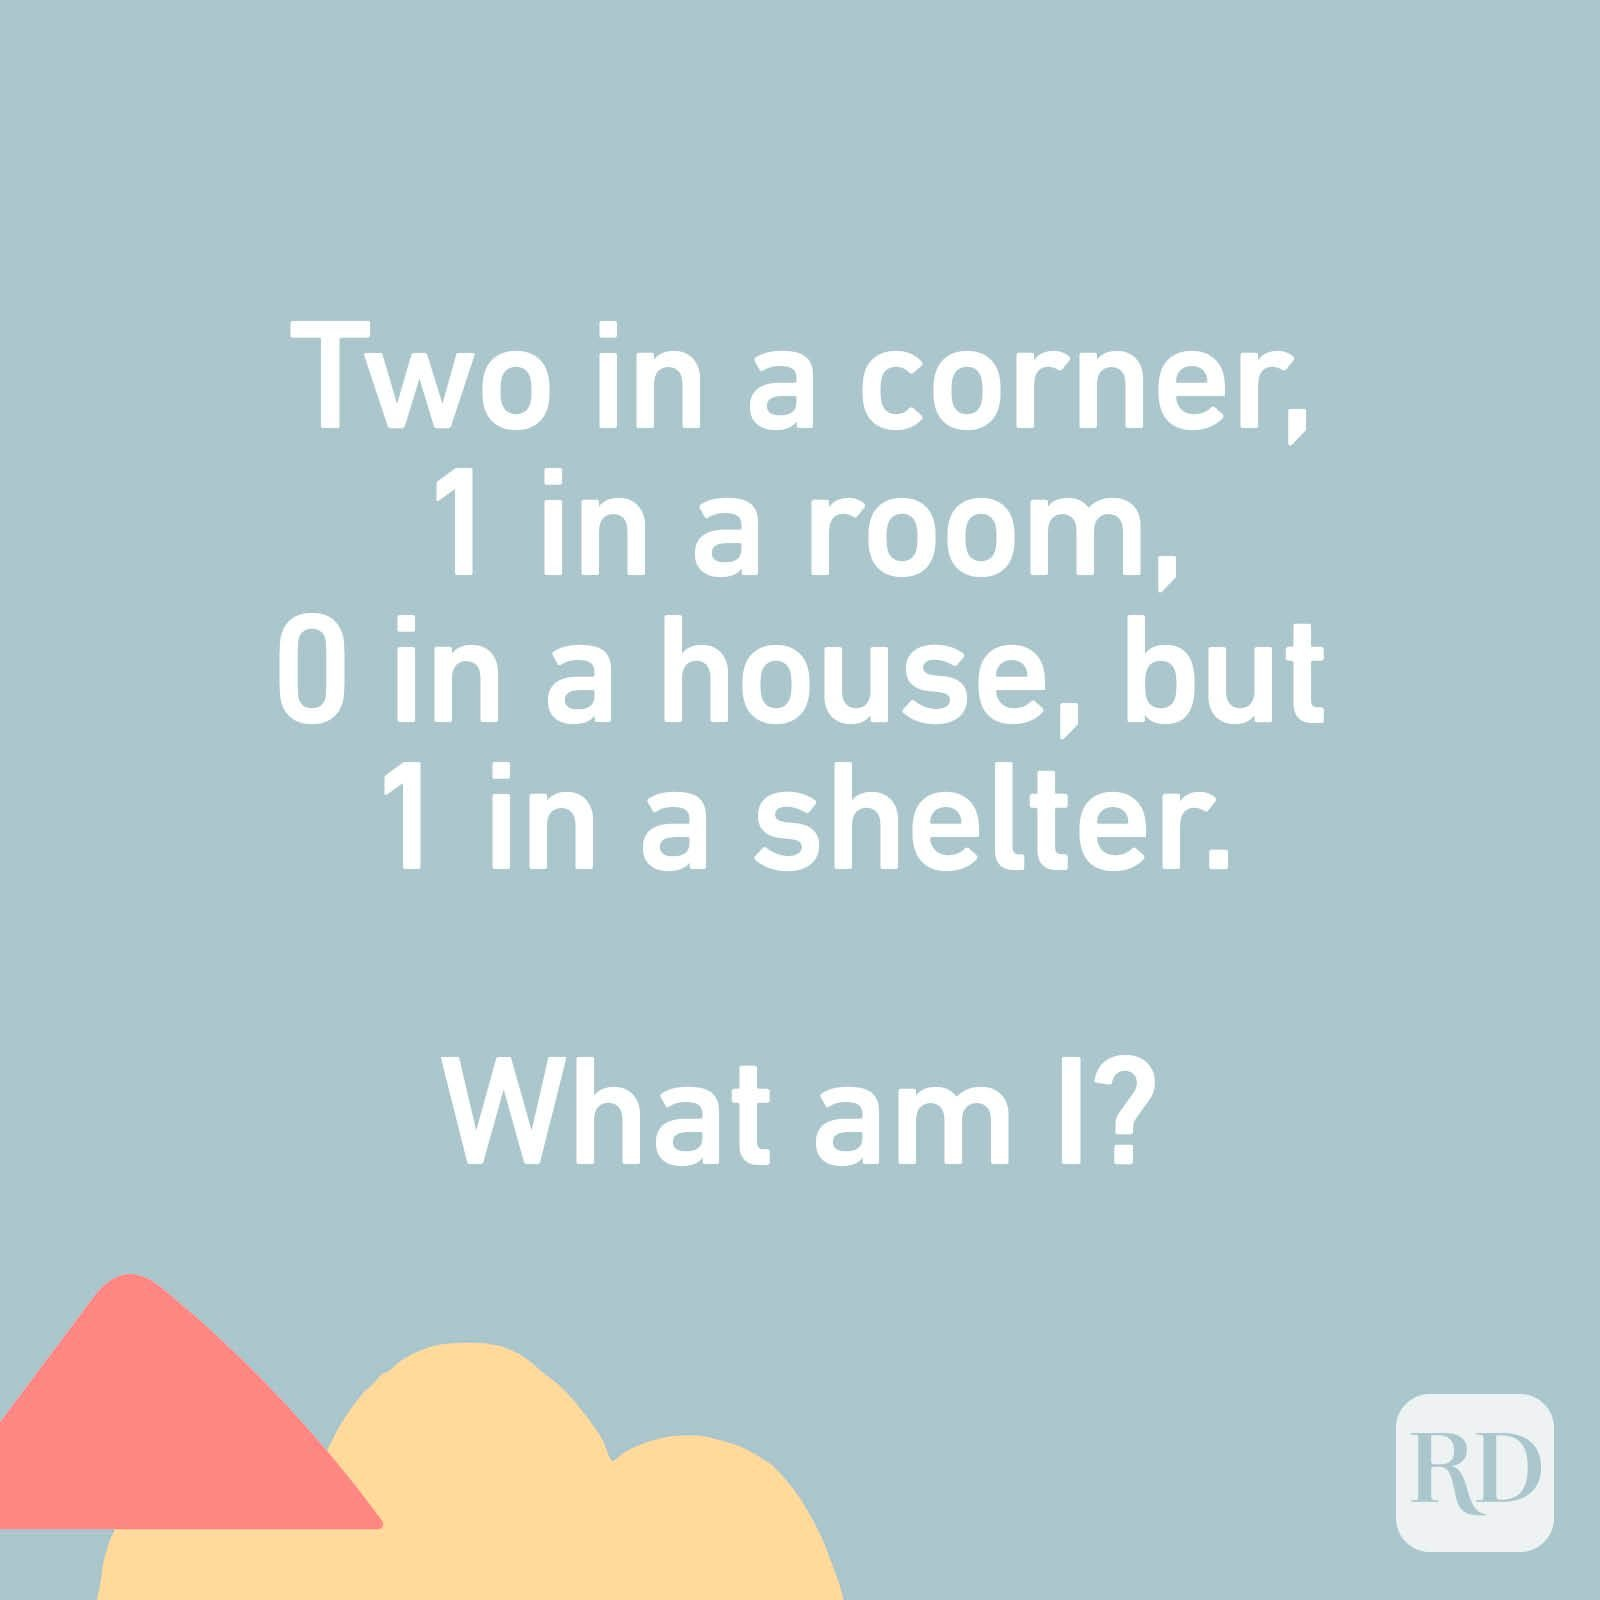 Two in a corner, 1 in a room, 0 in a house, but 1 in a shelter. What am I?